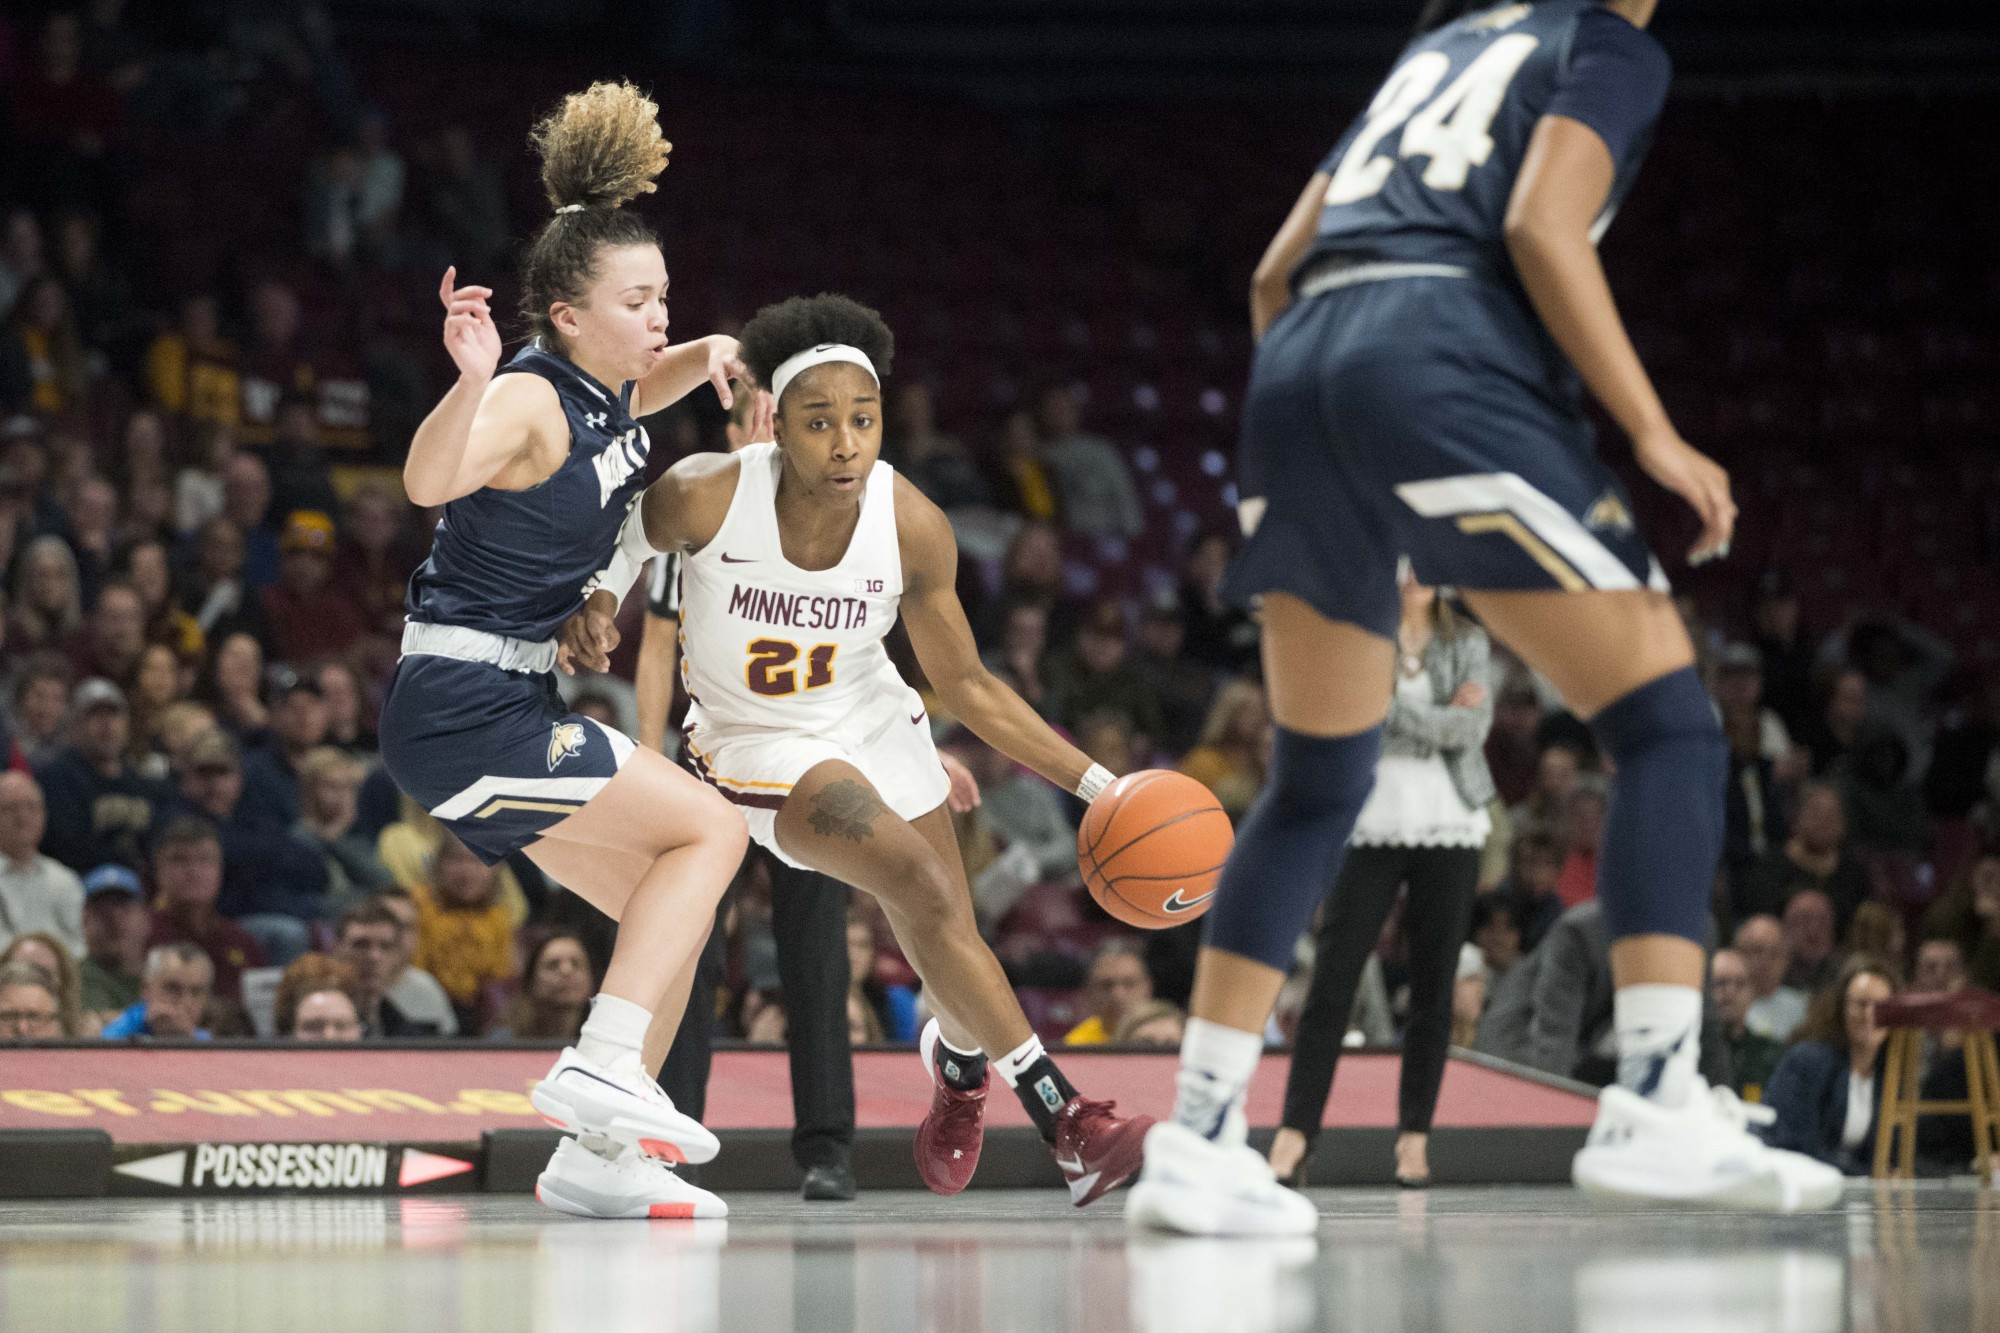 Guard Jasmine Brunson dribbles the ball through defenders in Williams Arena on Saturday, Nov. 23. The Gophers went on to defeat Montana State 71-60.